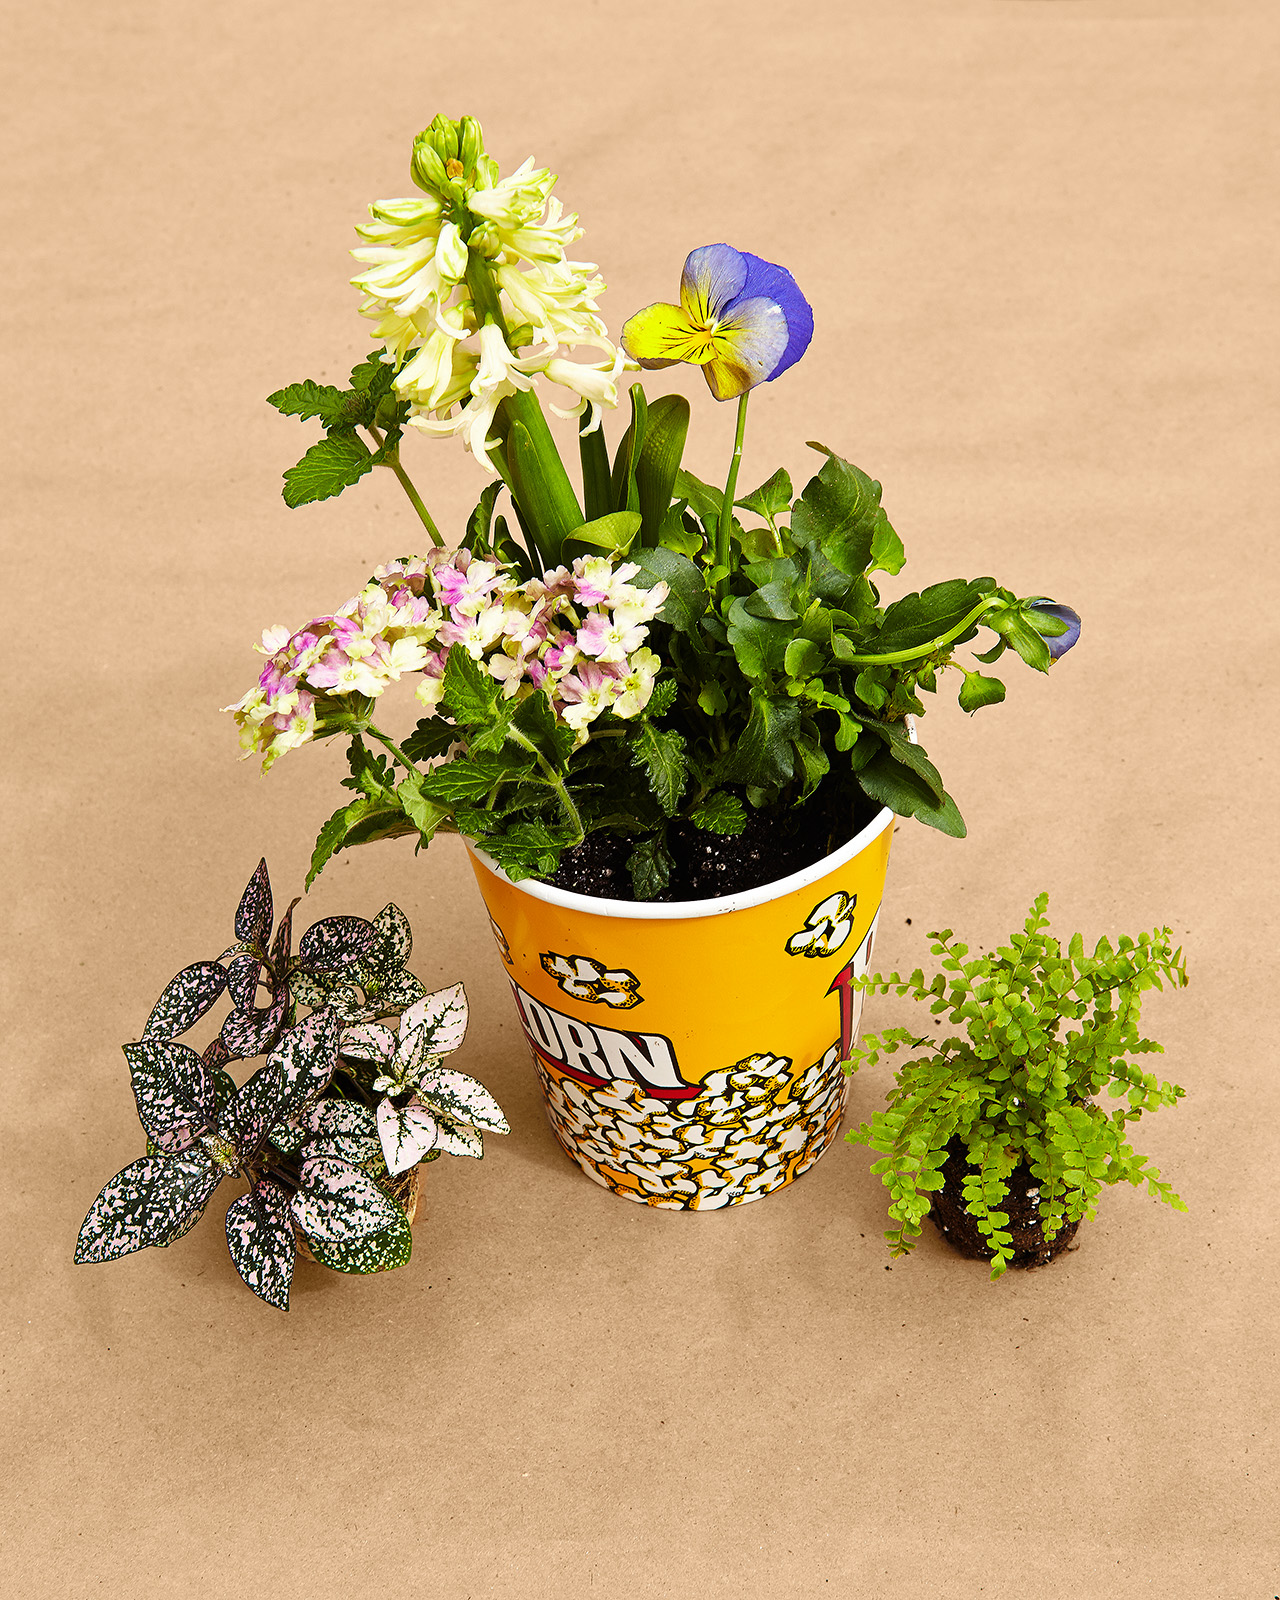 adding plants to soil in popcorn cup